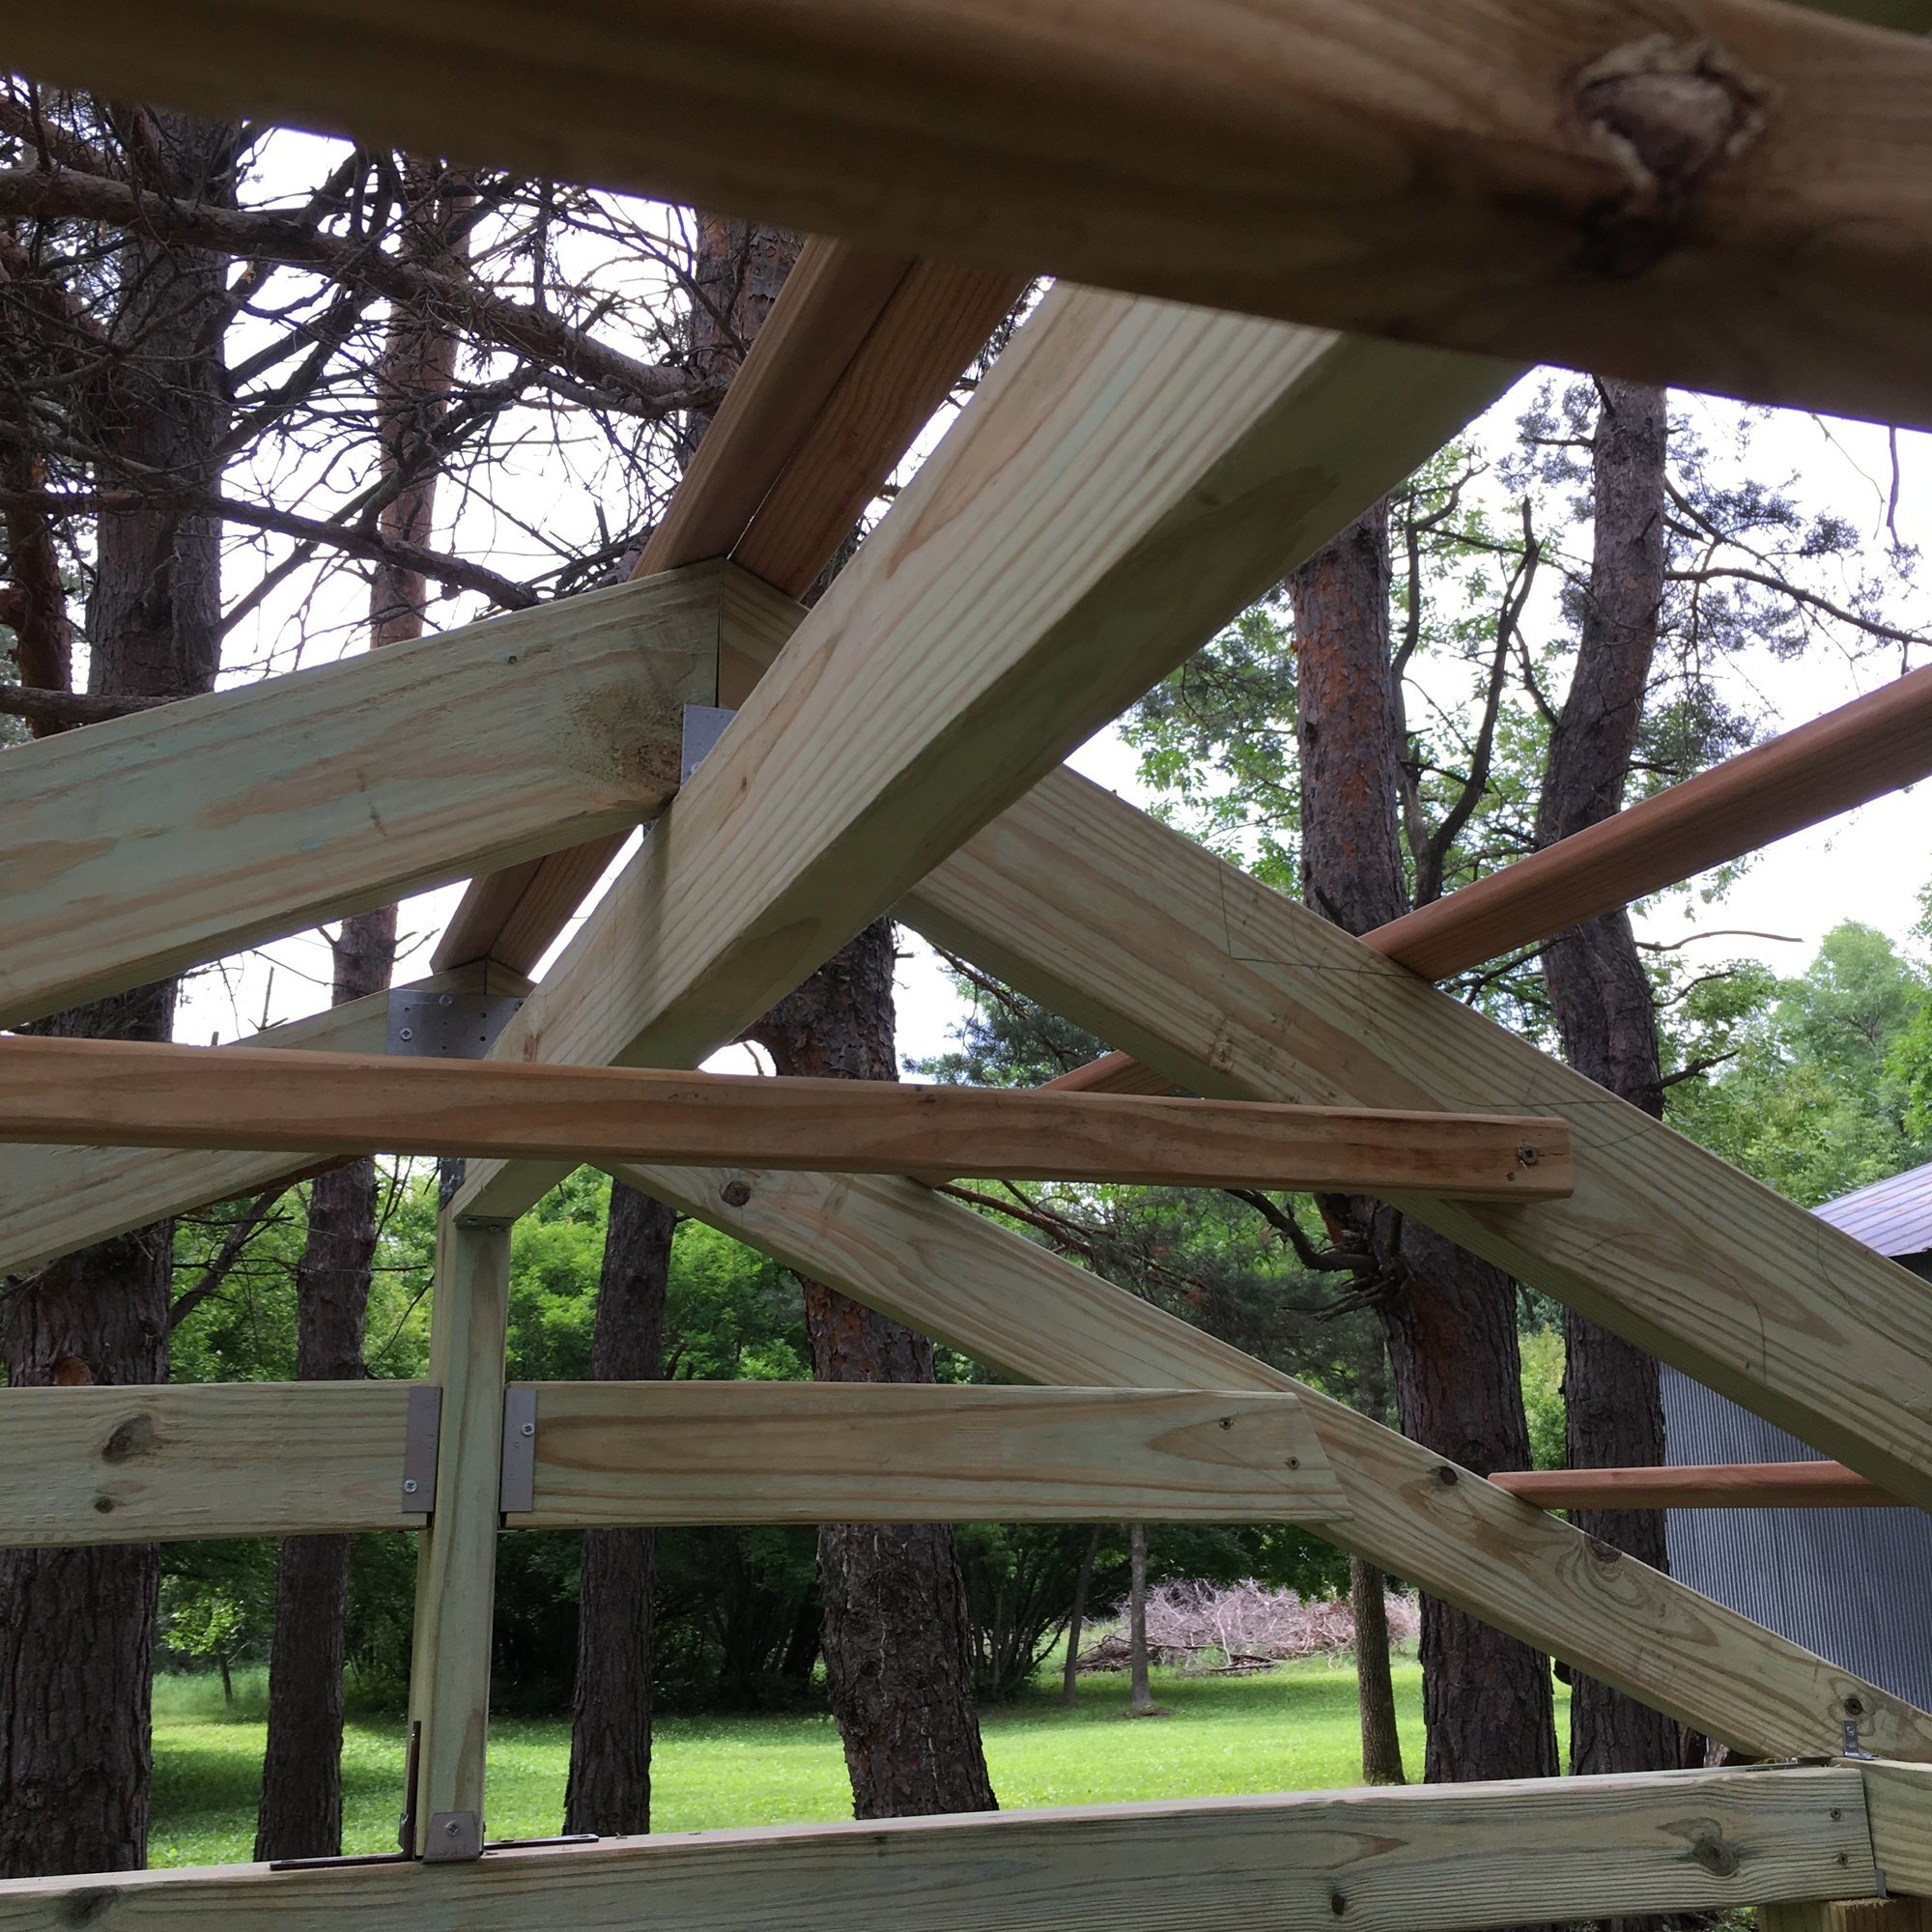 10-roof trusses and purlins.jpg